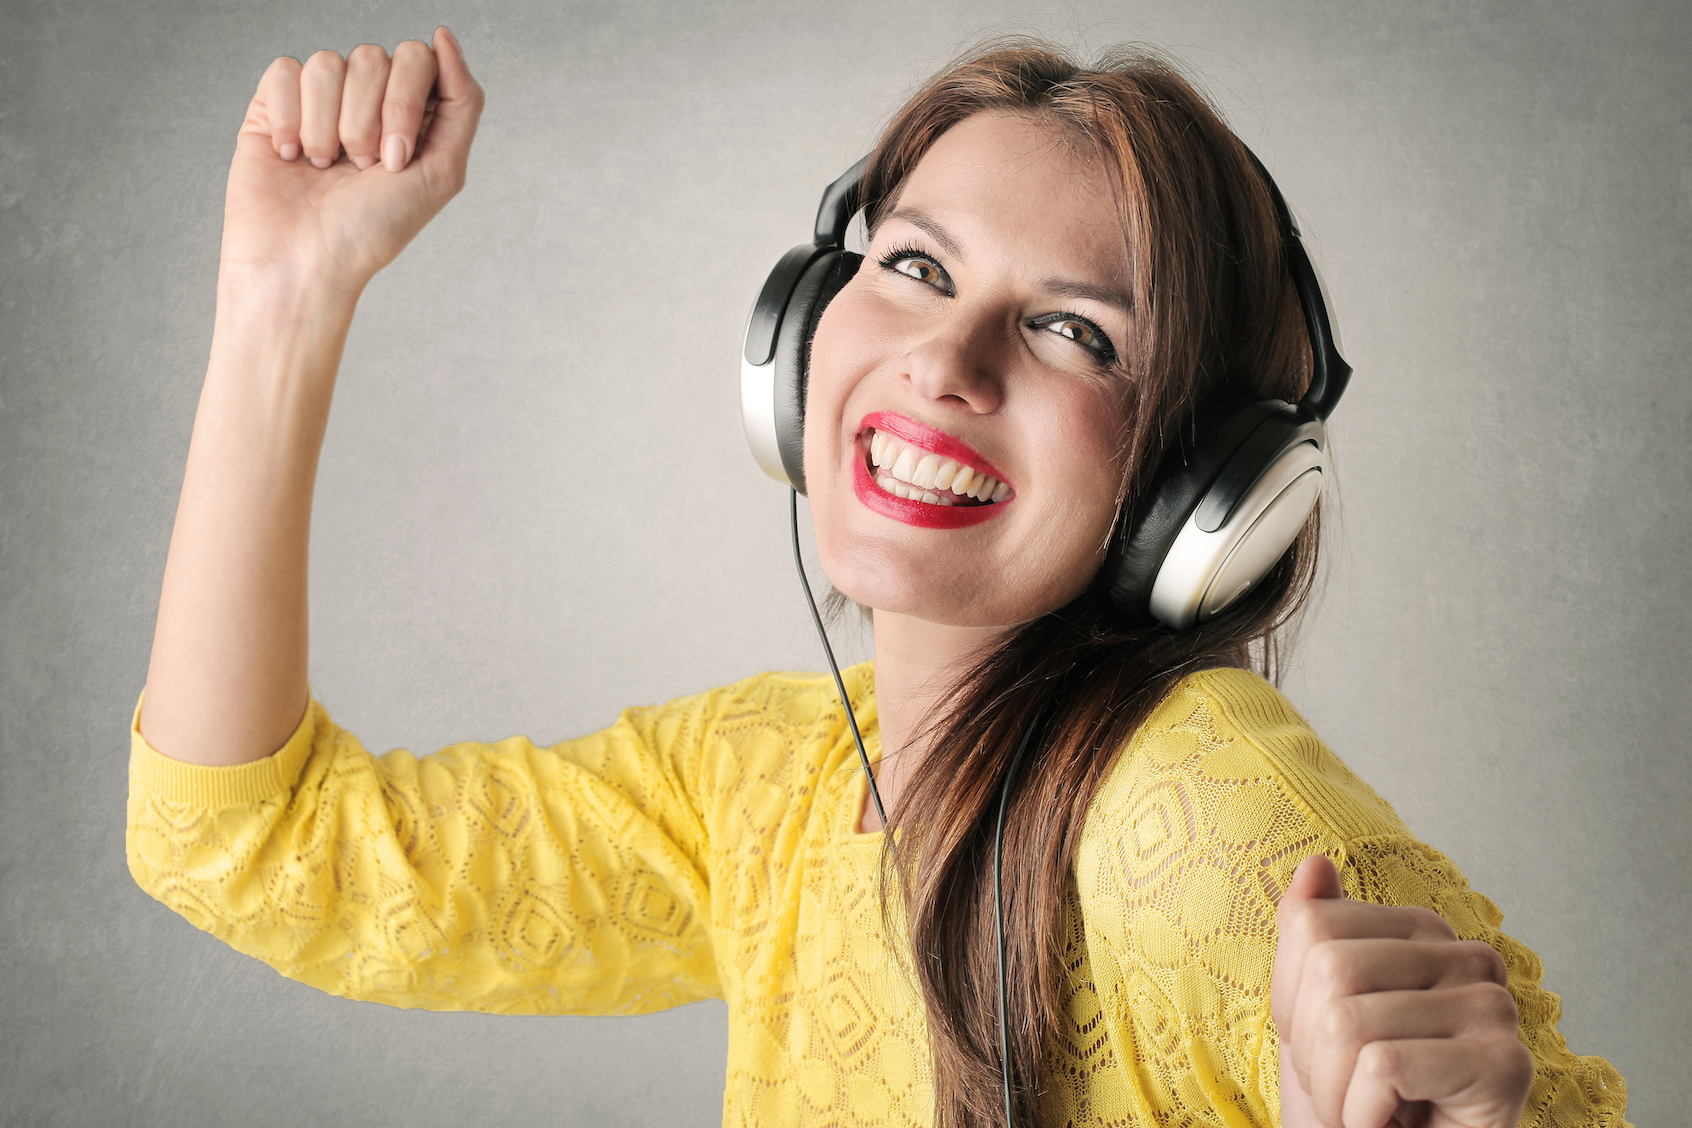 Research from Australia and the Netherlands has revealed that listening to happy music affects creative cognition in a positive way.